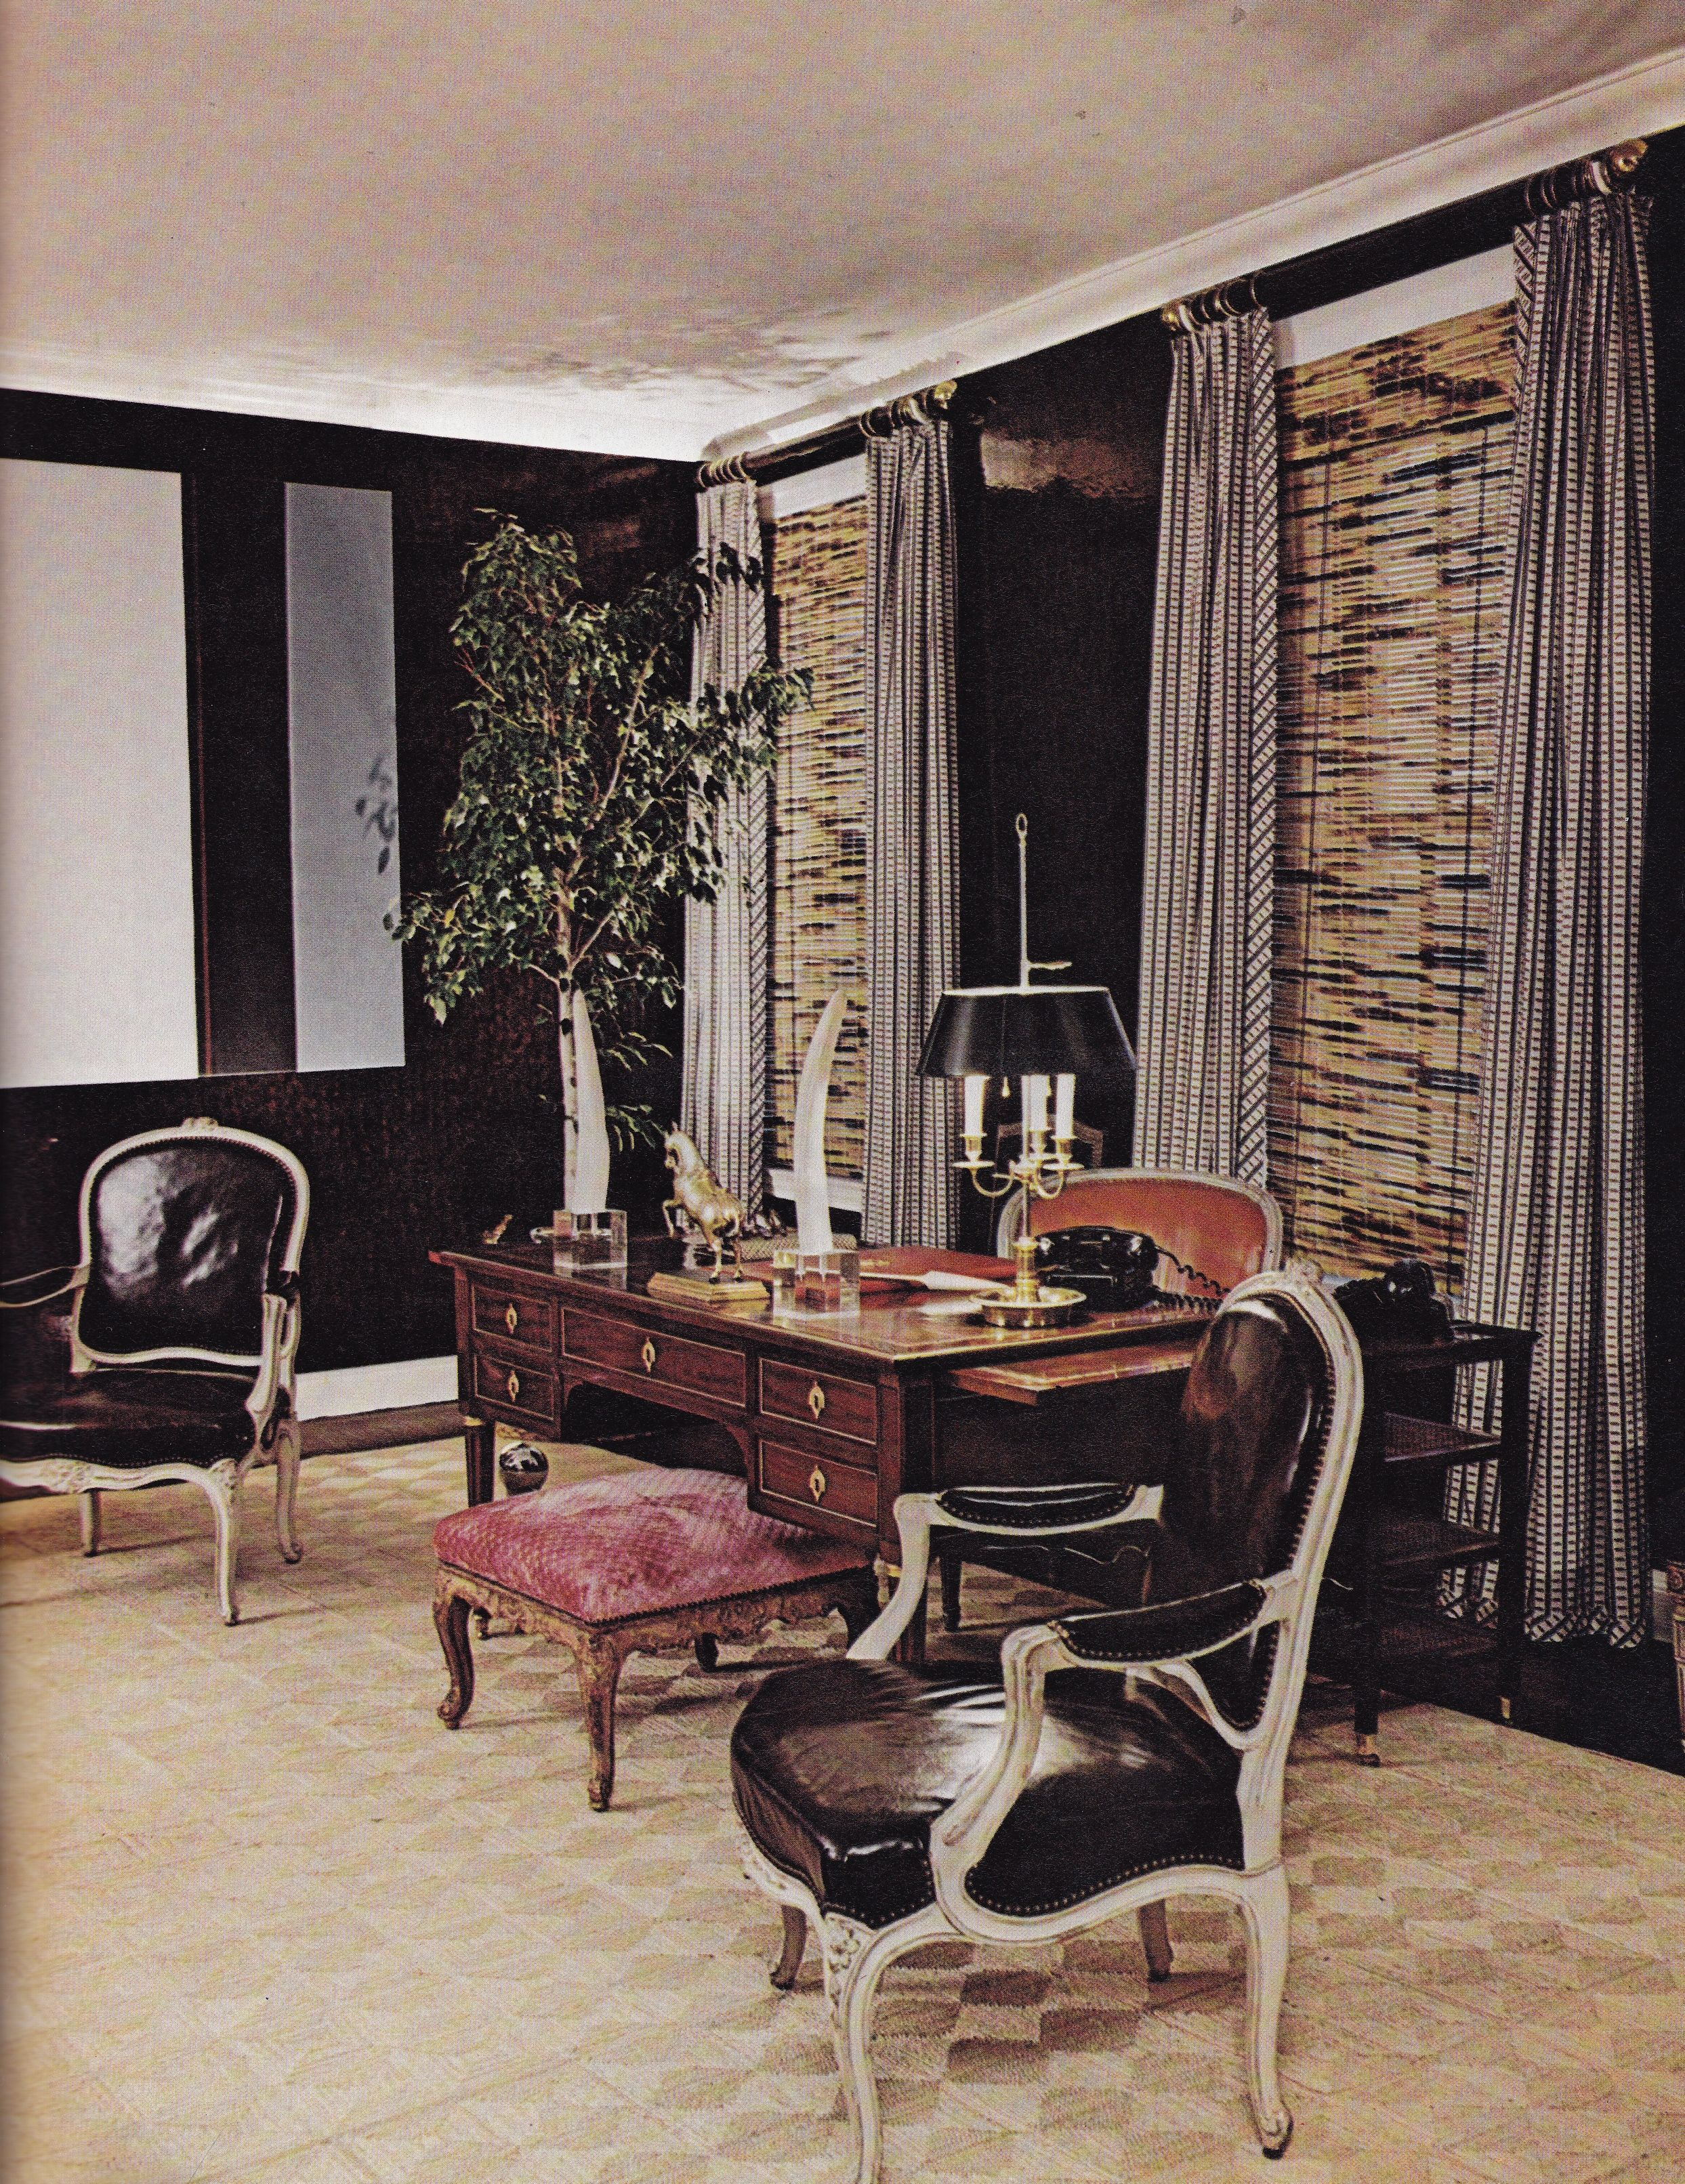 Kevin mcnamara brown living room the ny times book of interior design and decoration norman mcgrath